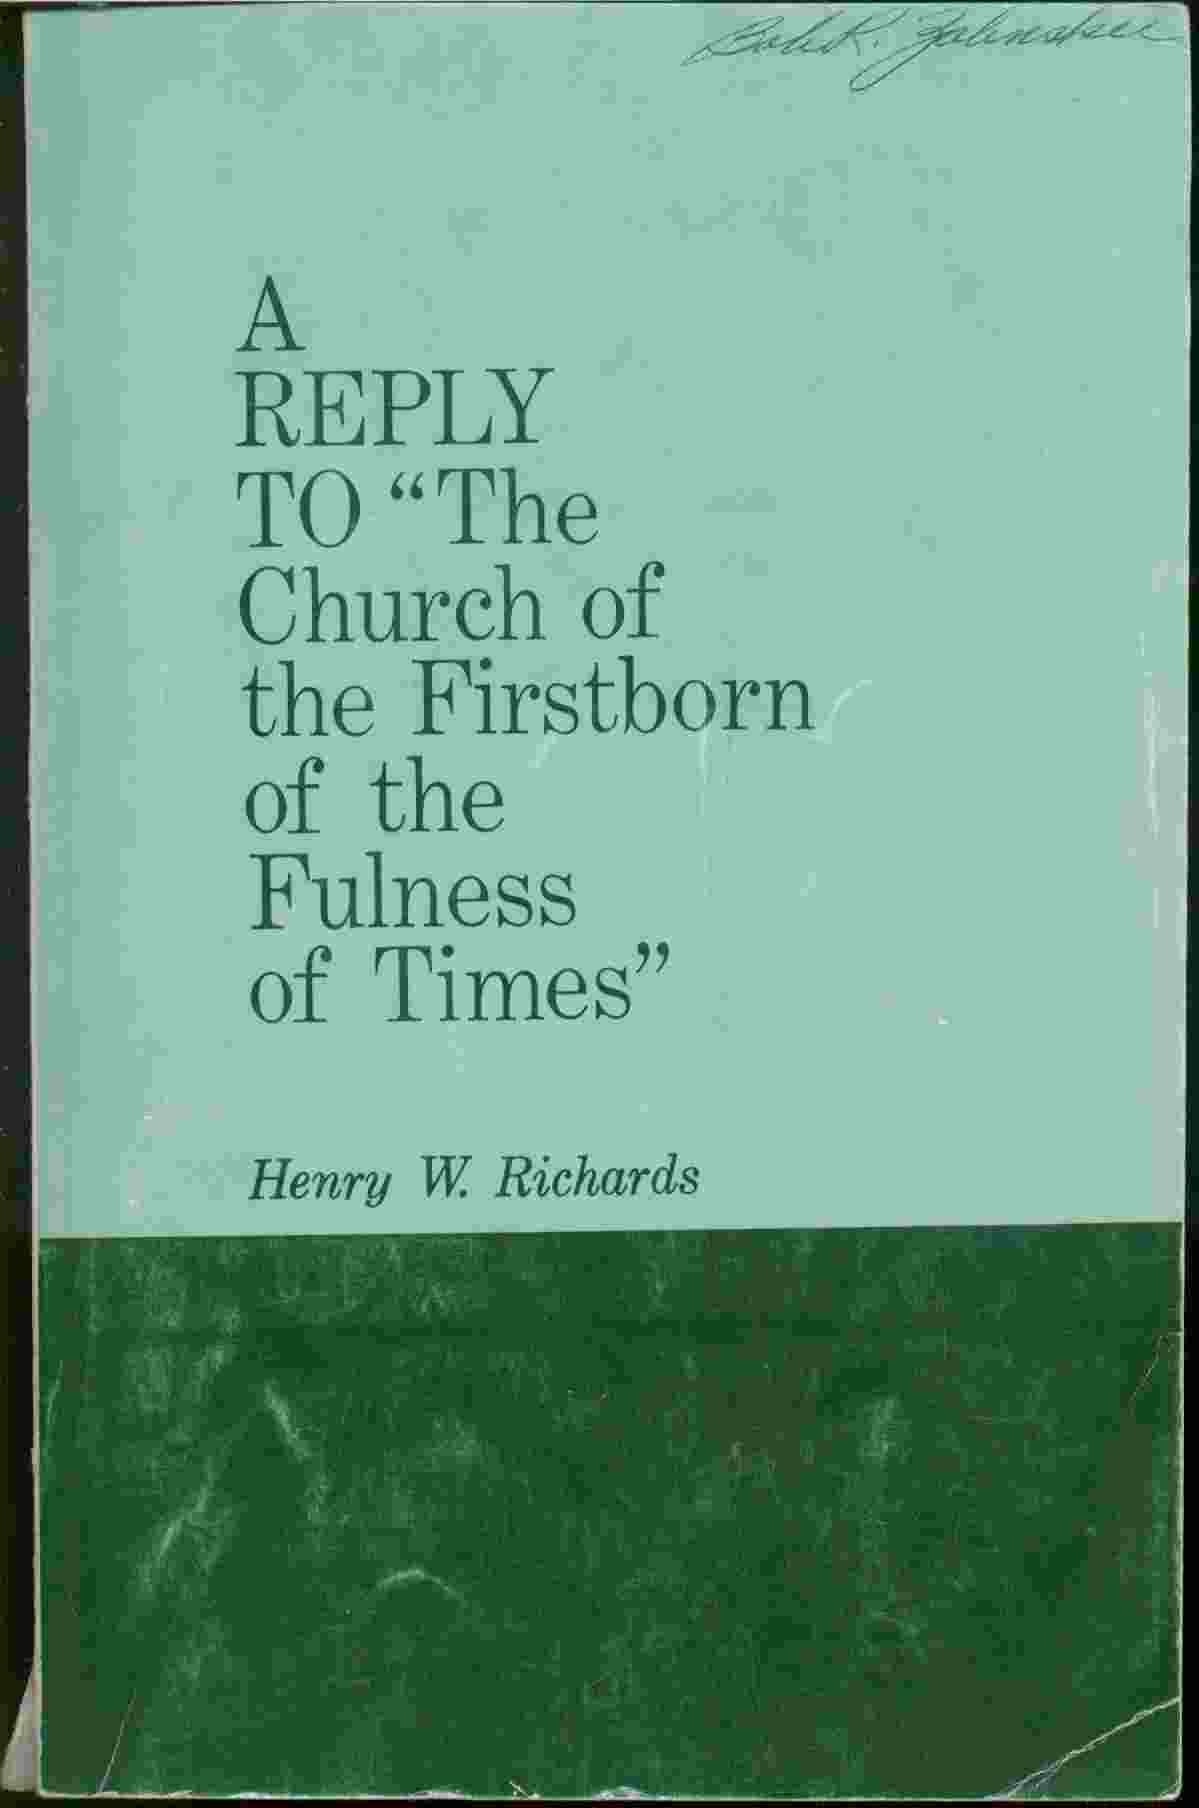 A REPLY TO THE CHURCH OF THE FIRSTBORN OF THE FULNESS OF TIMES - An Answer to Priesthood Claims Made by the Church of the Firstborn of the Fulness of Times, Richards, Henry W.